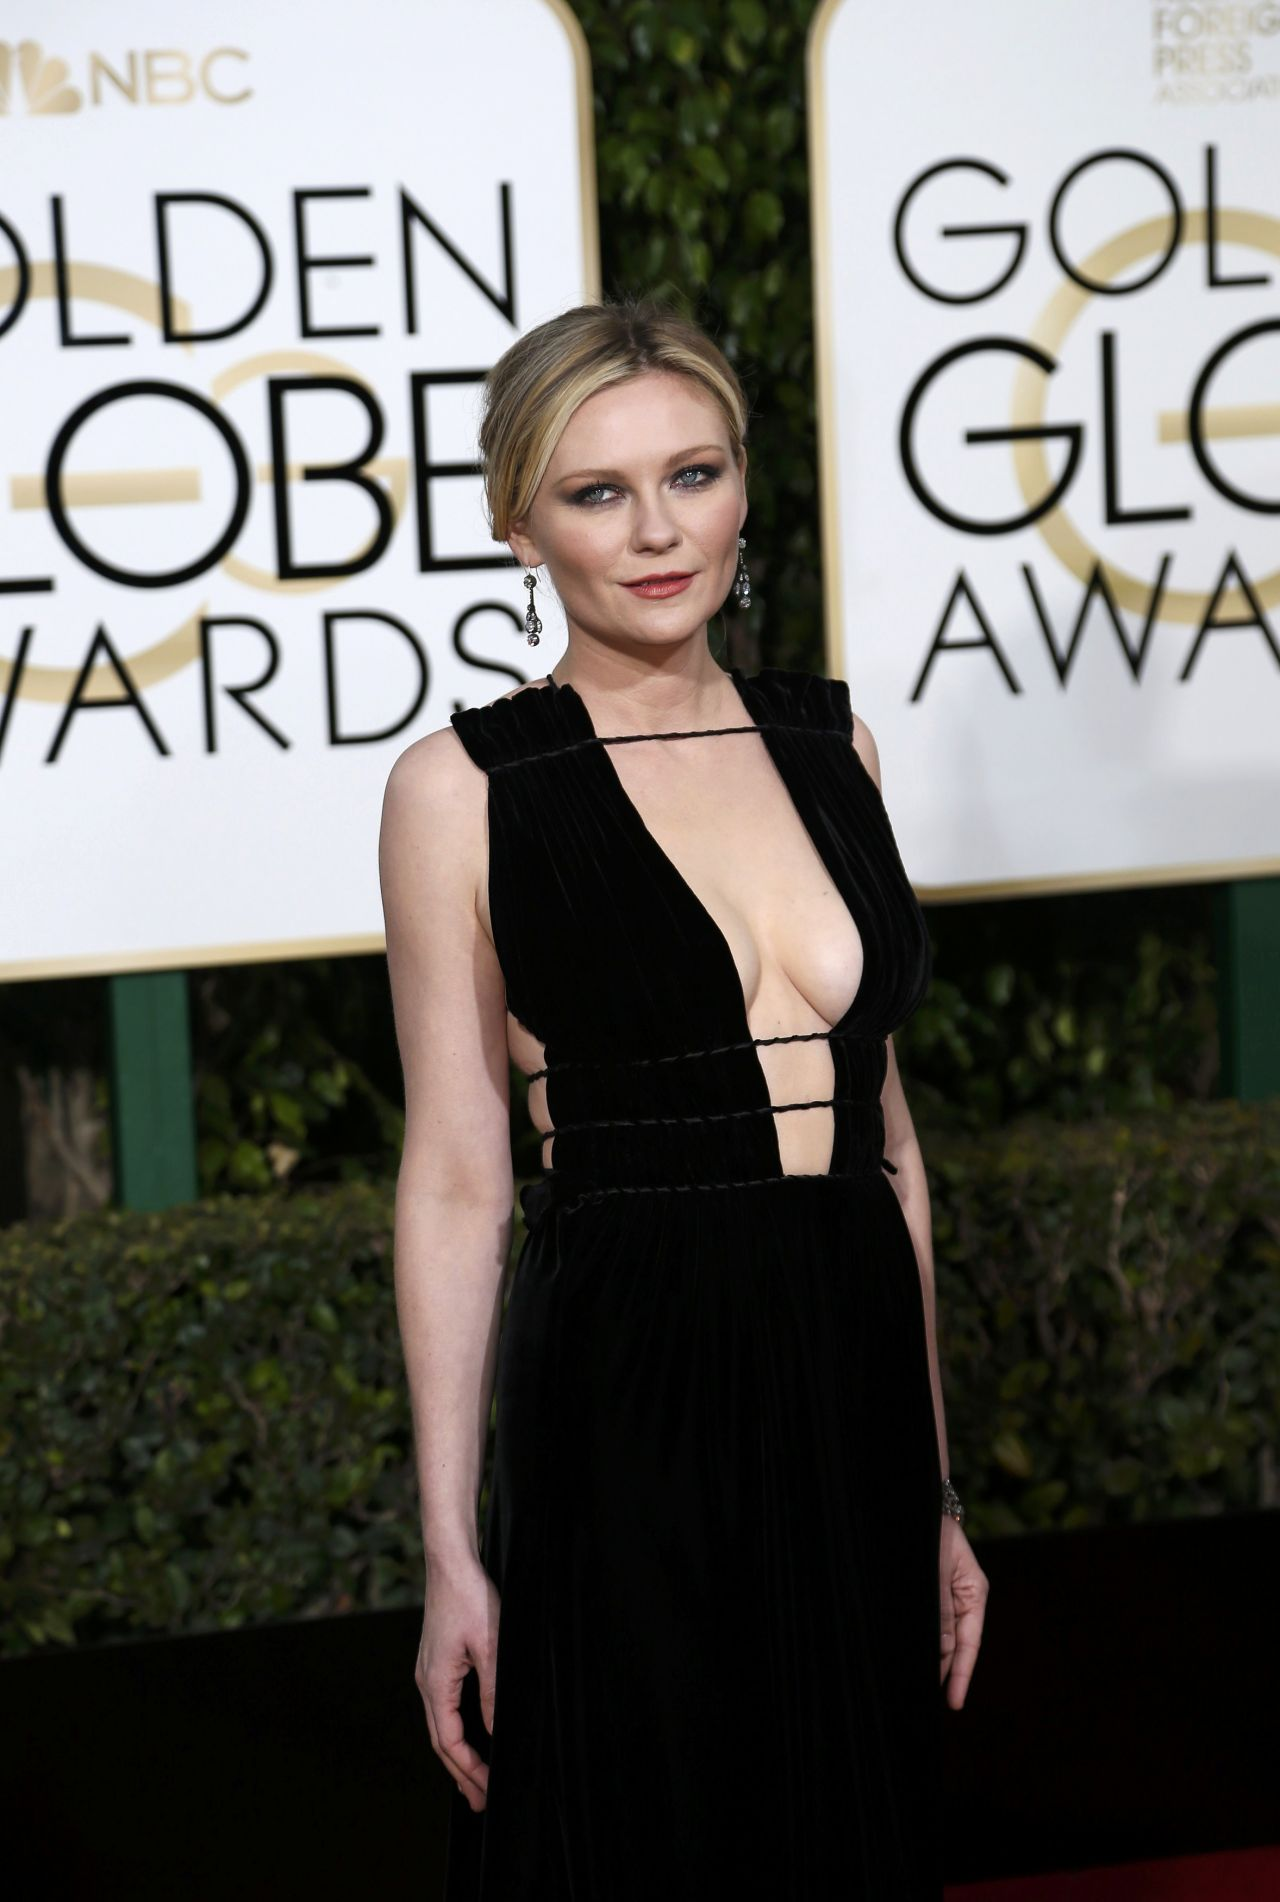 kirsten-dunst-2016-golden-globe-awards-in-beverly-hills-2